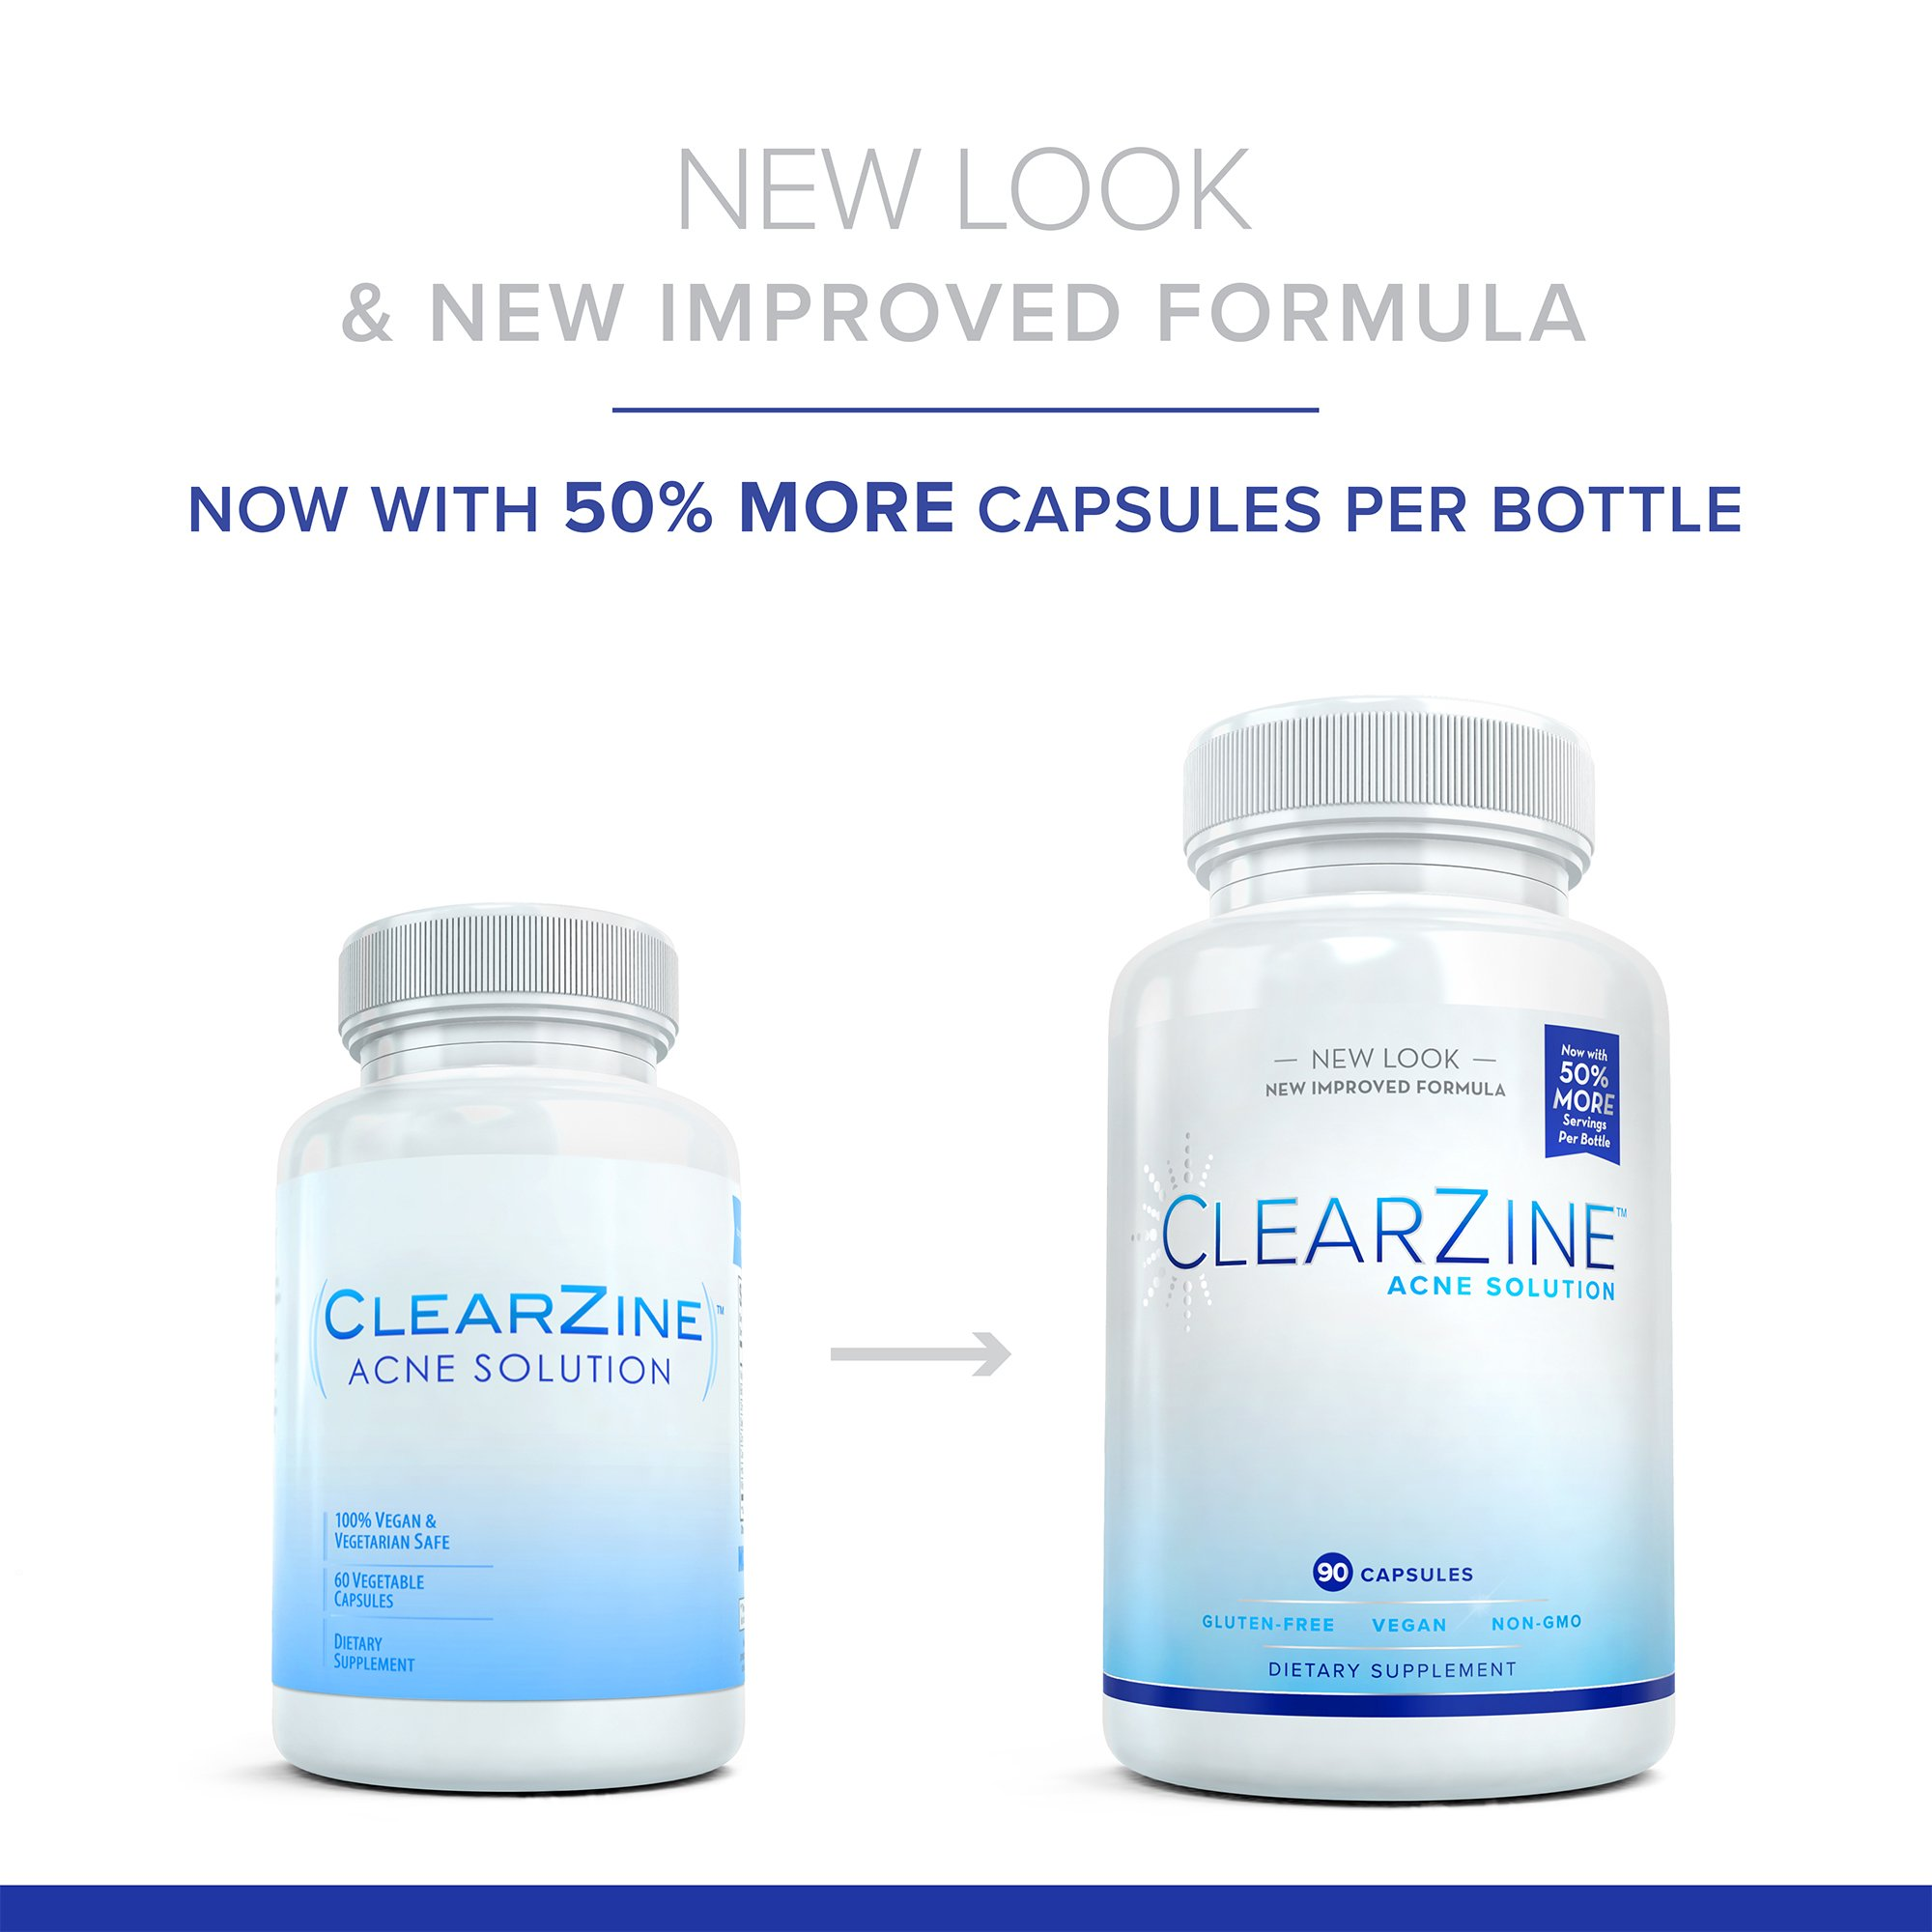 ClearZine Acne Pills for Teens & Adults   Clear Skin Supplement, Vitamins for Hormonal & Cystic Acne   Stop Breakouts, Oily Skin with Milk Thistle, Pantothenic Acid & Zinc, 2 Bottles, 90 Caps Each by ClearZine (Image #2)